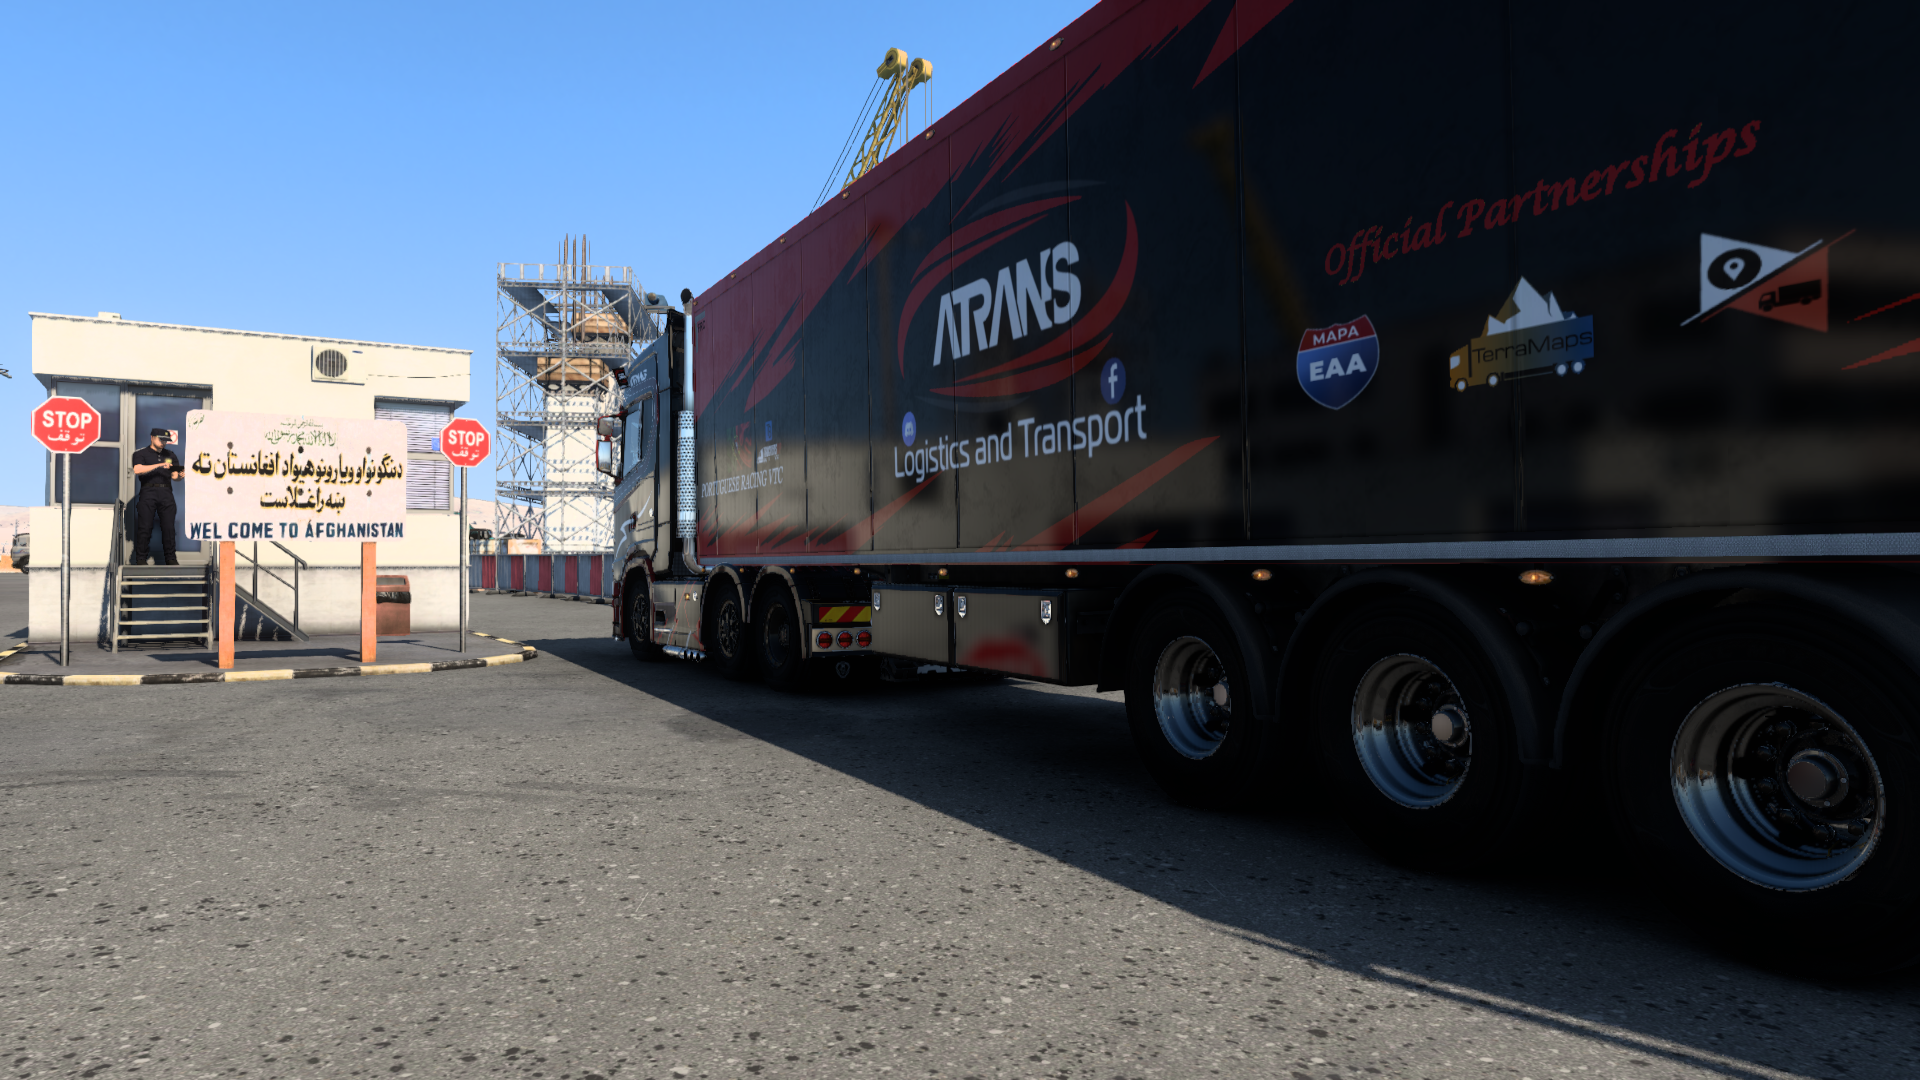 ets2_20210904_231508_00.png